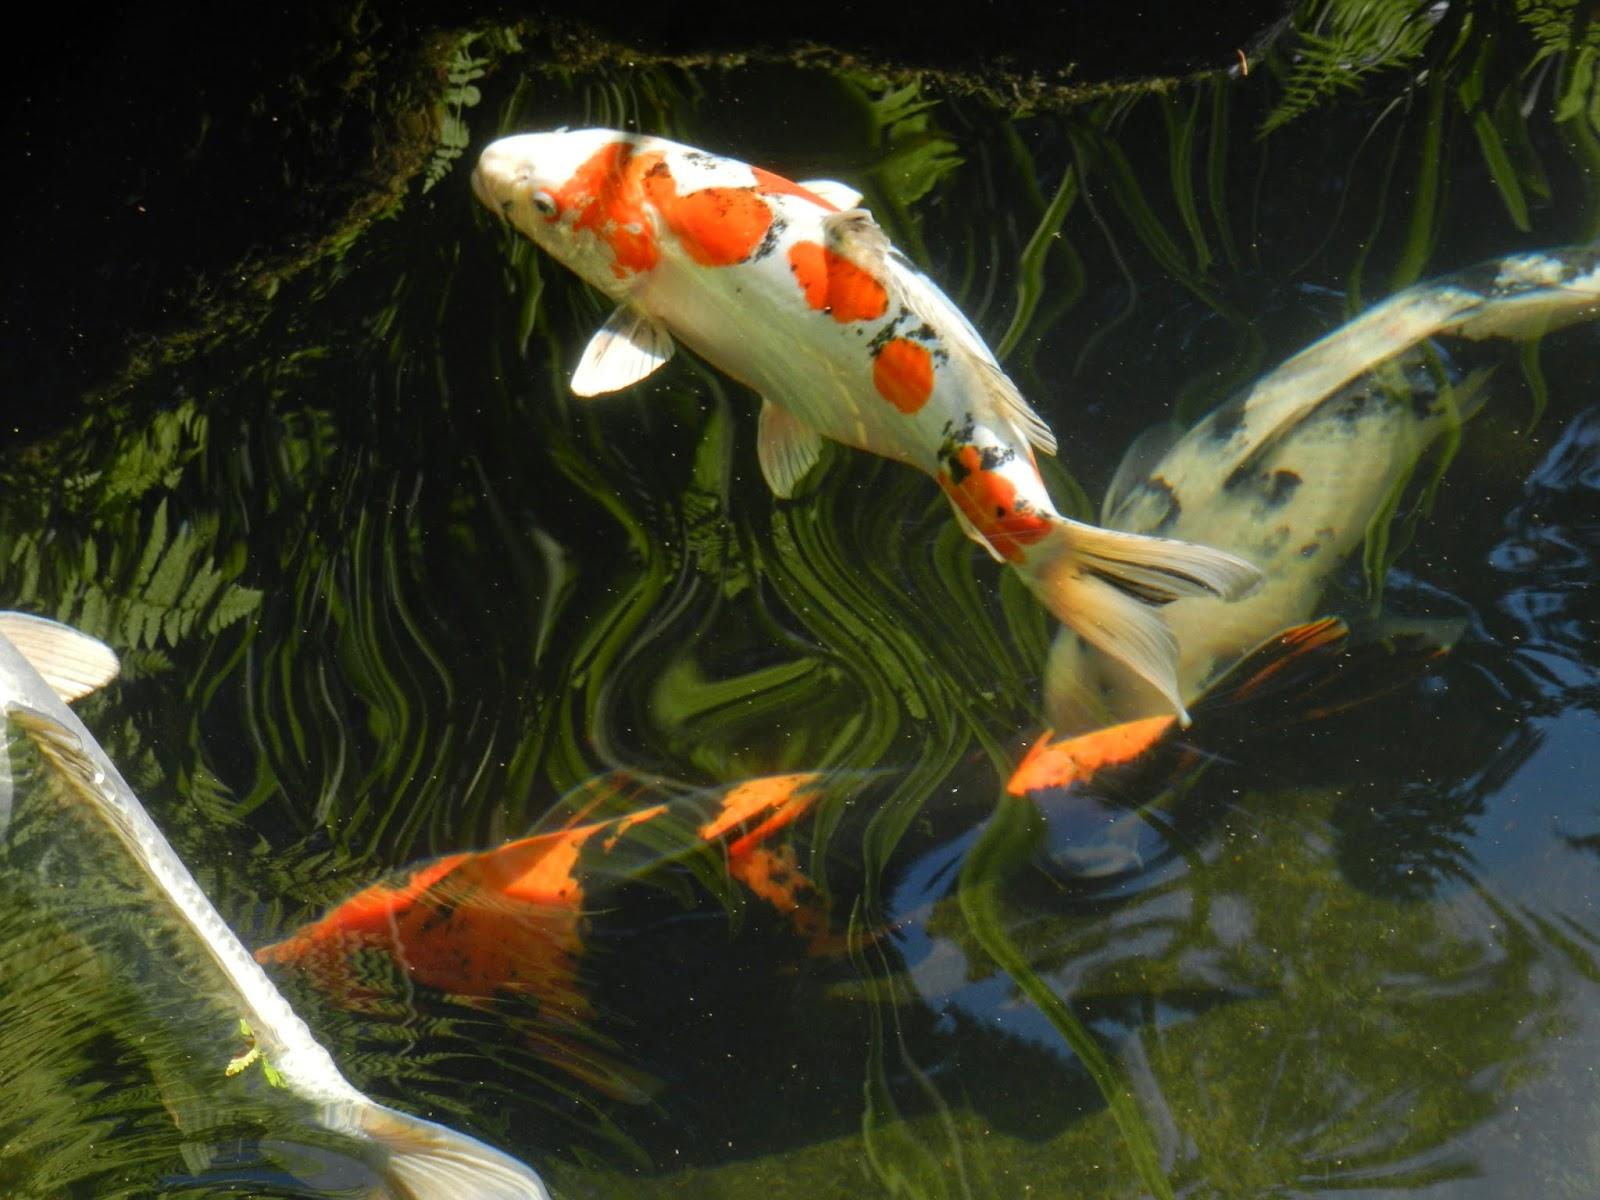 Prairie rose 39 s garden the many faces of portland part i for Portland japanese garden koi